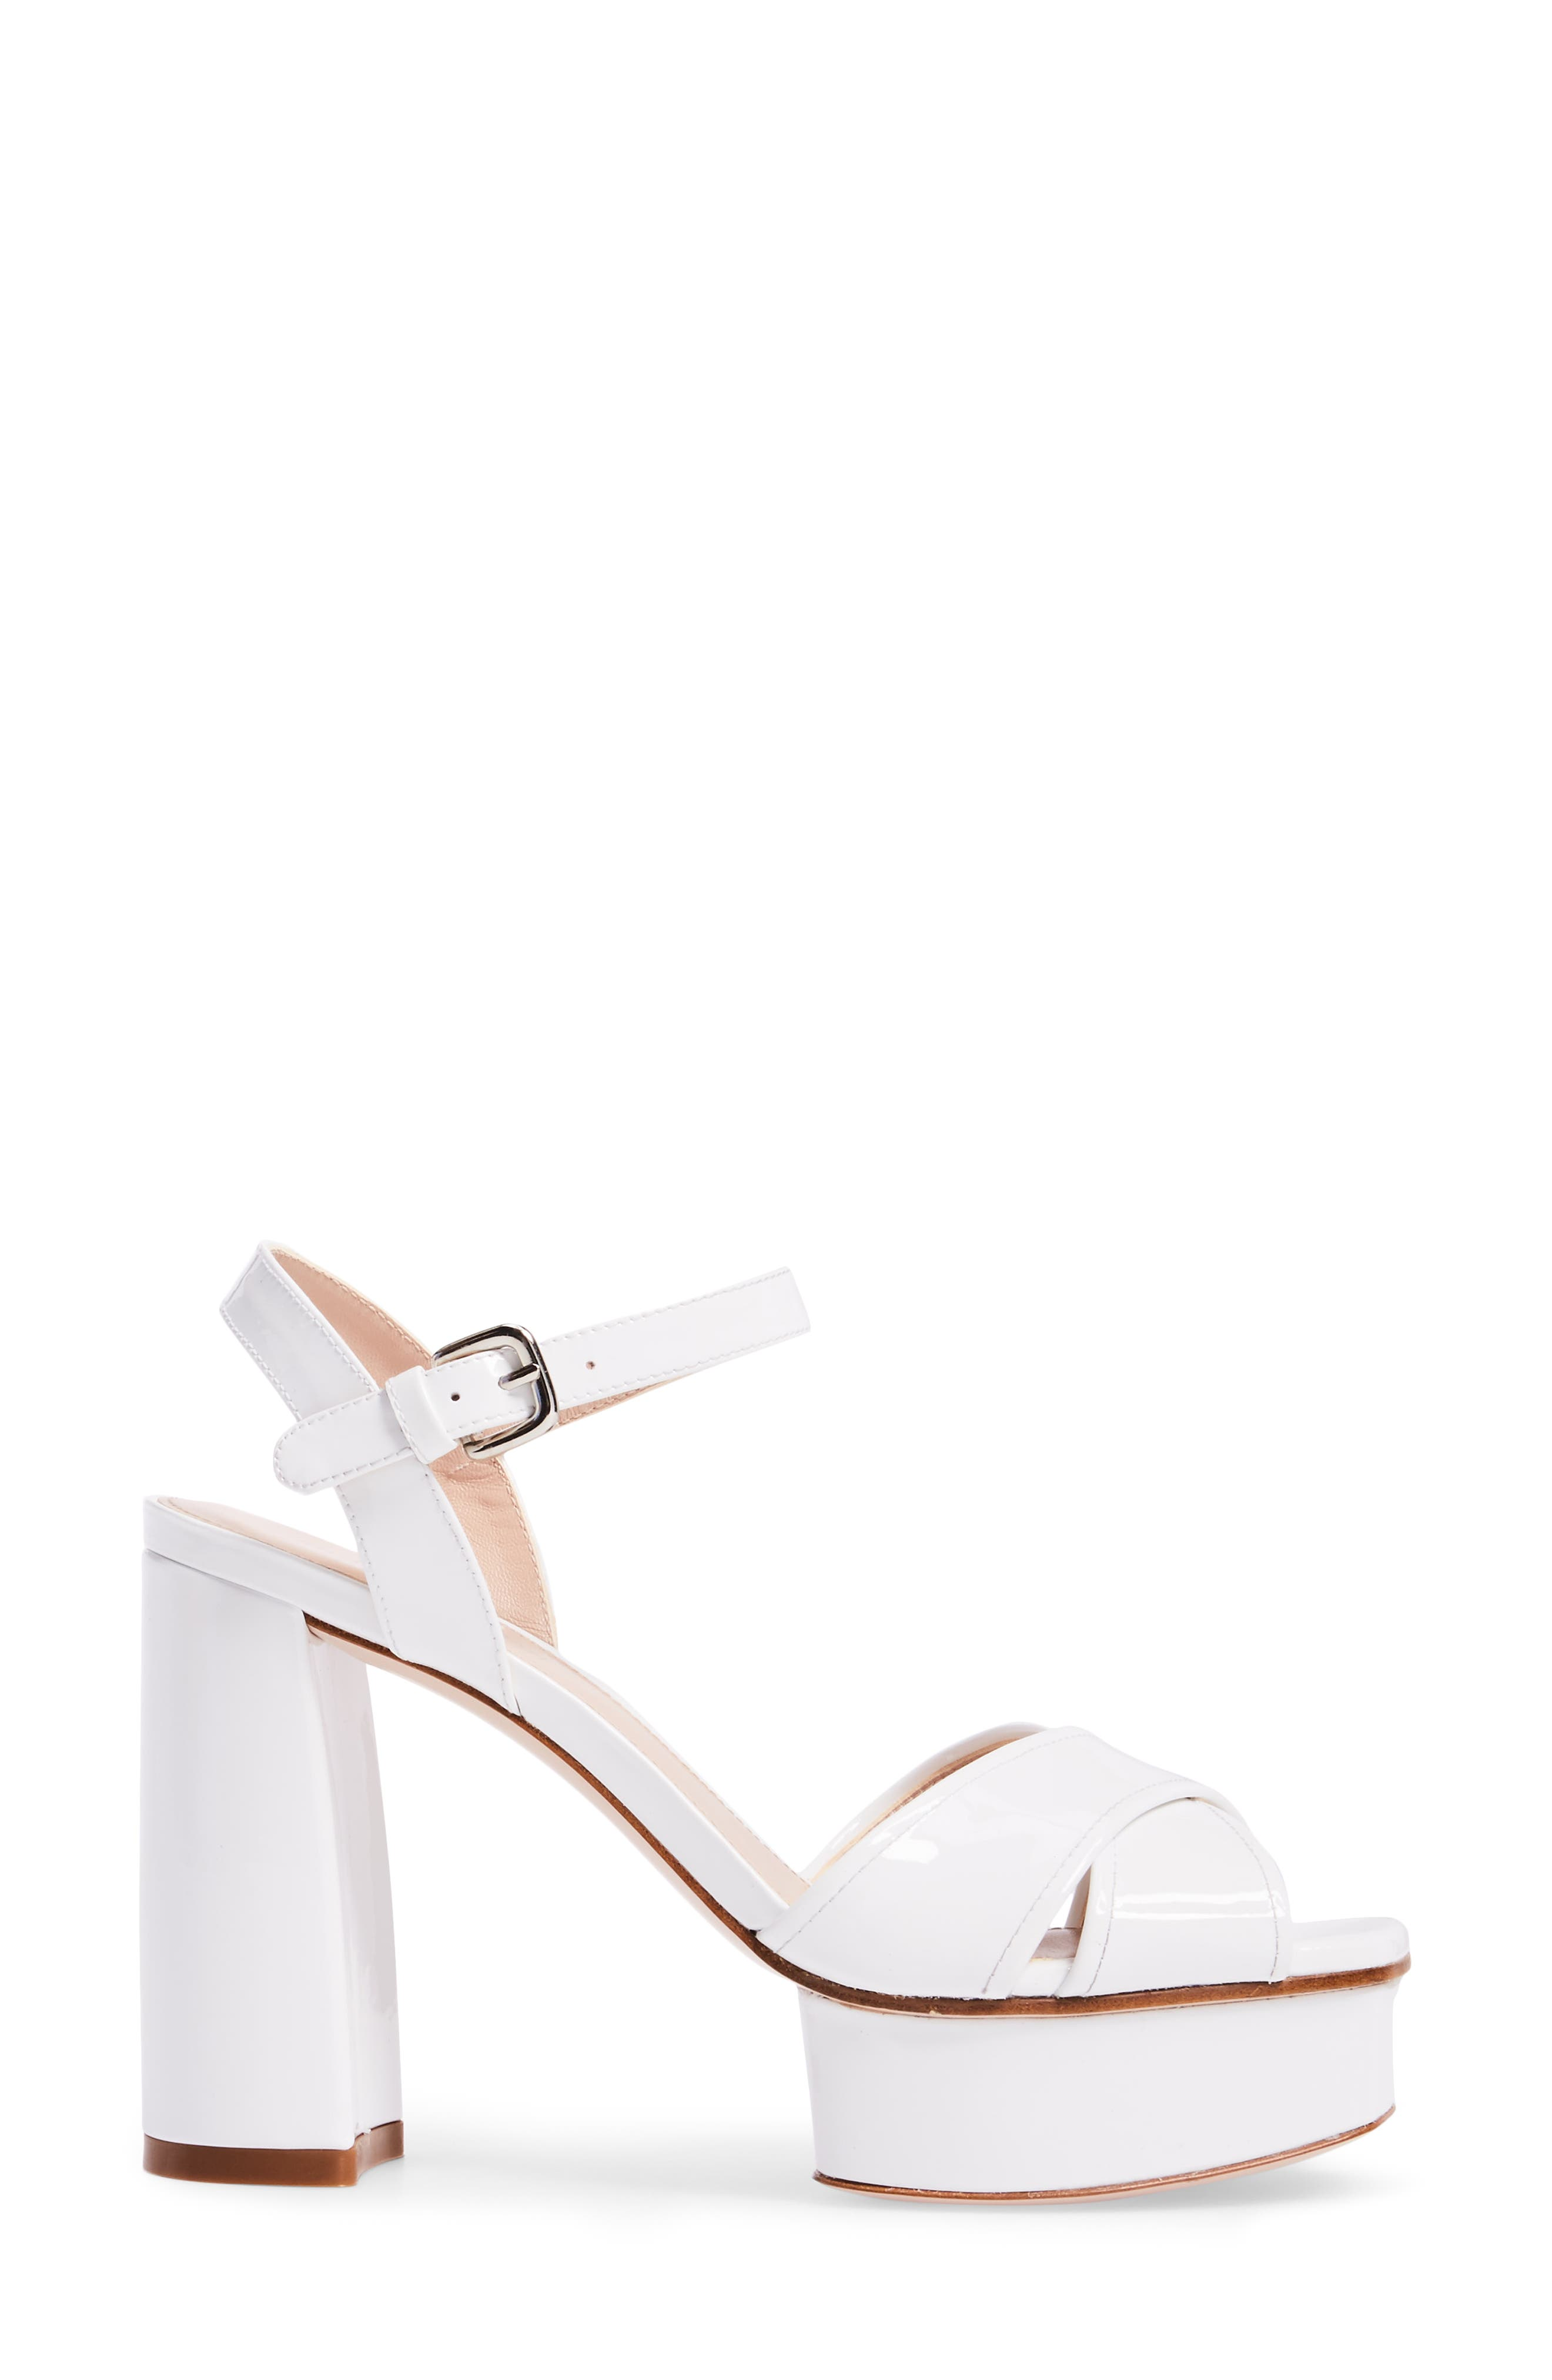 Exposed Platform Sandal,                             Alternate thumbnail 12, color,